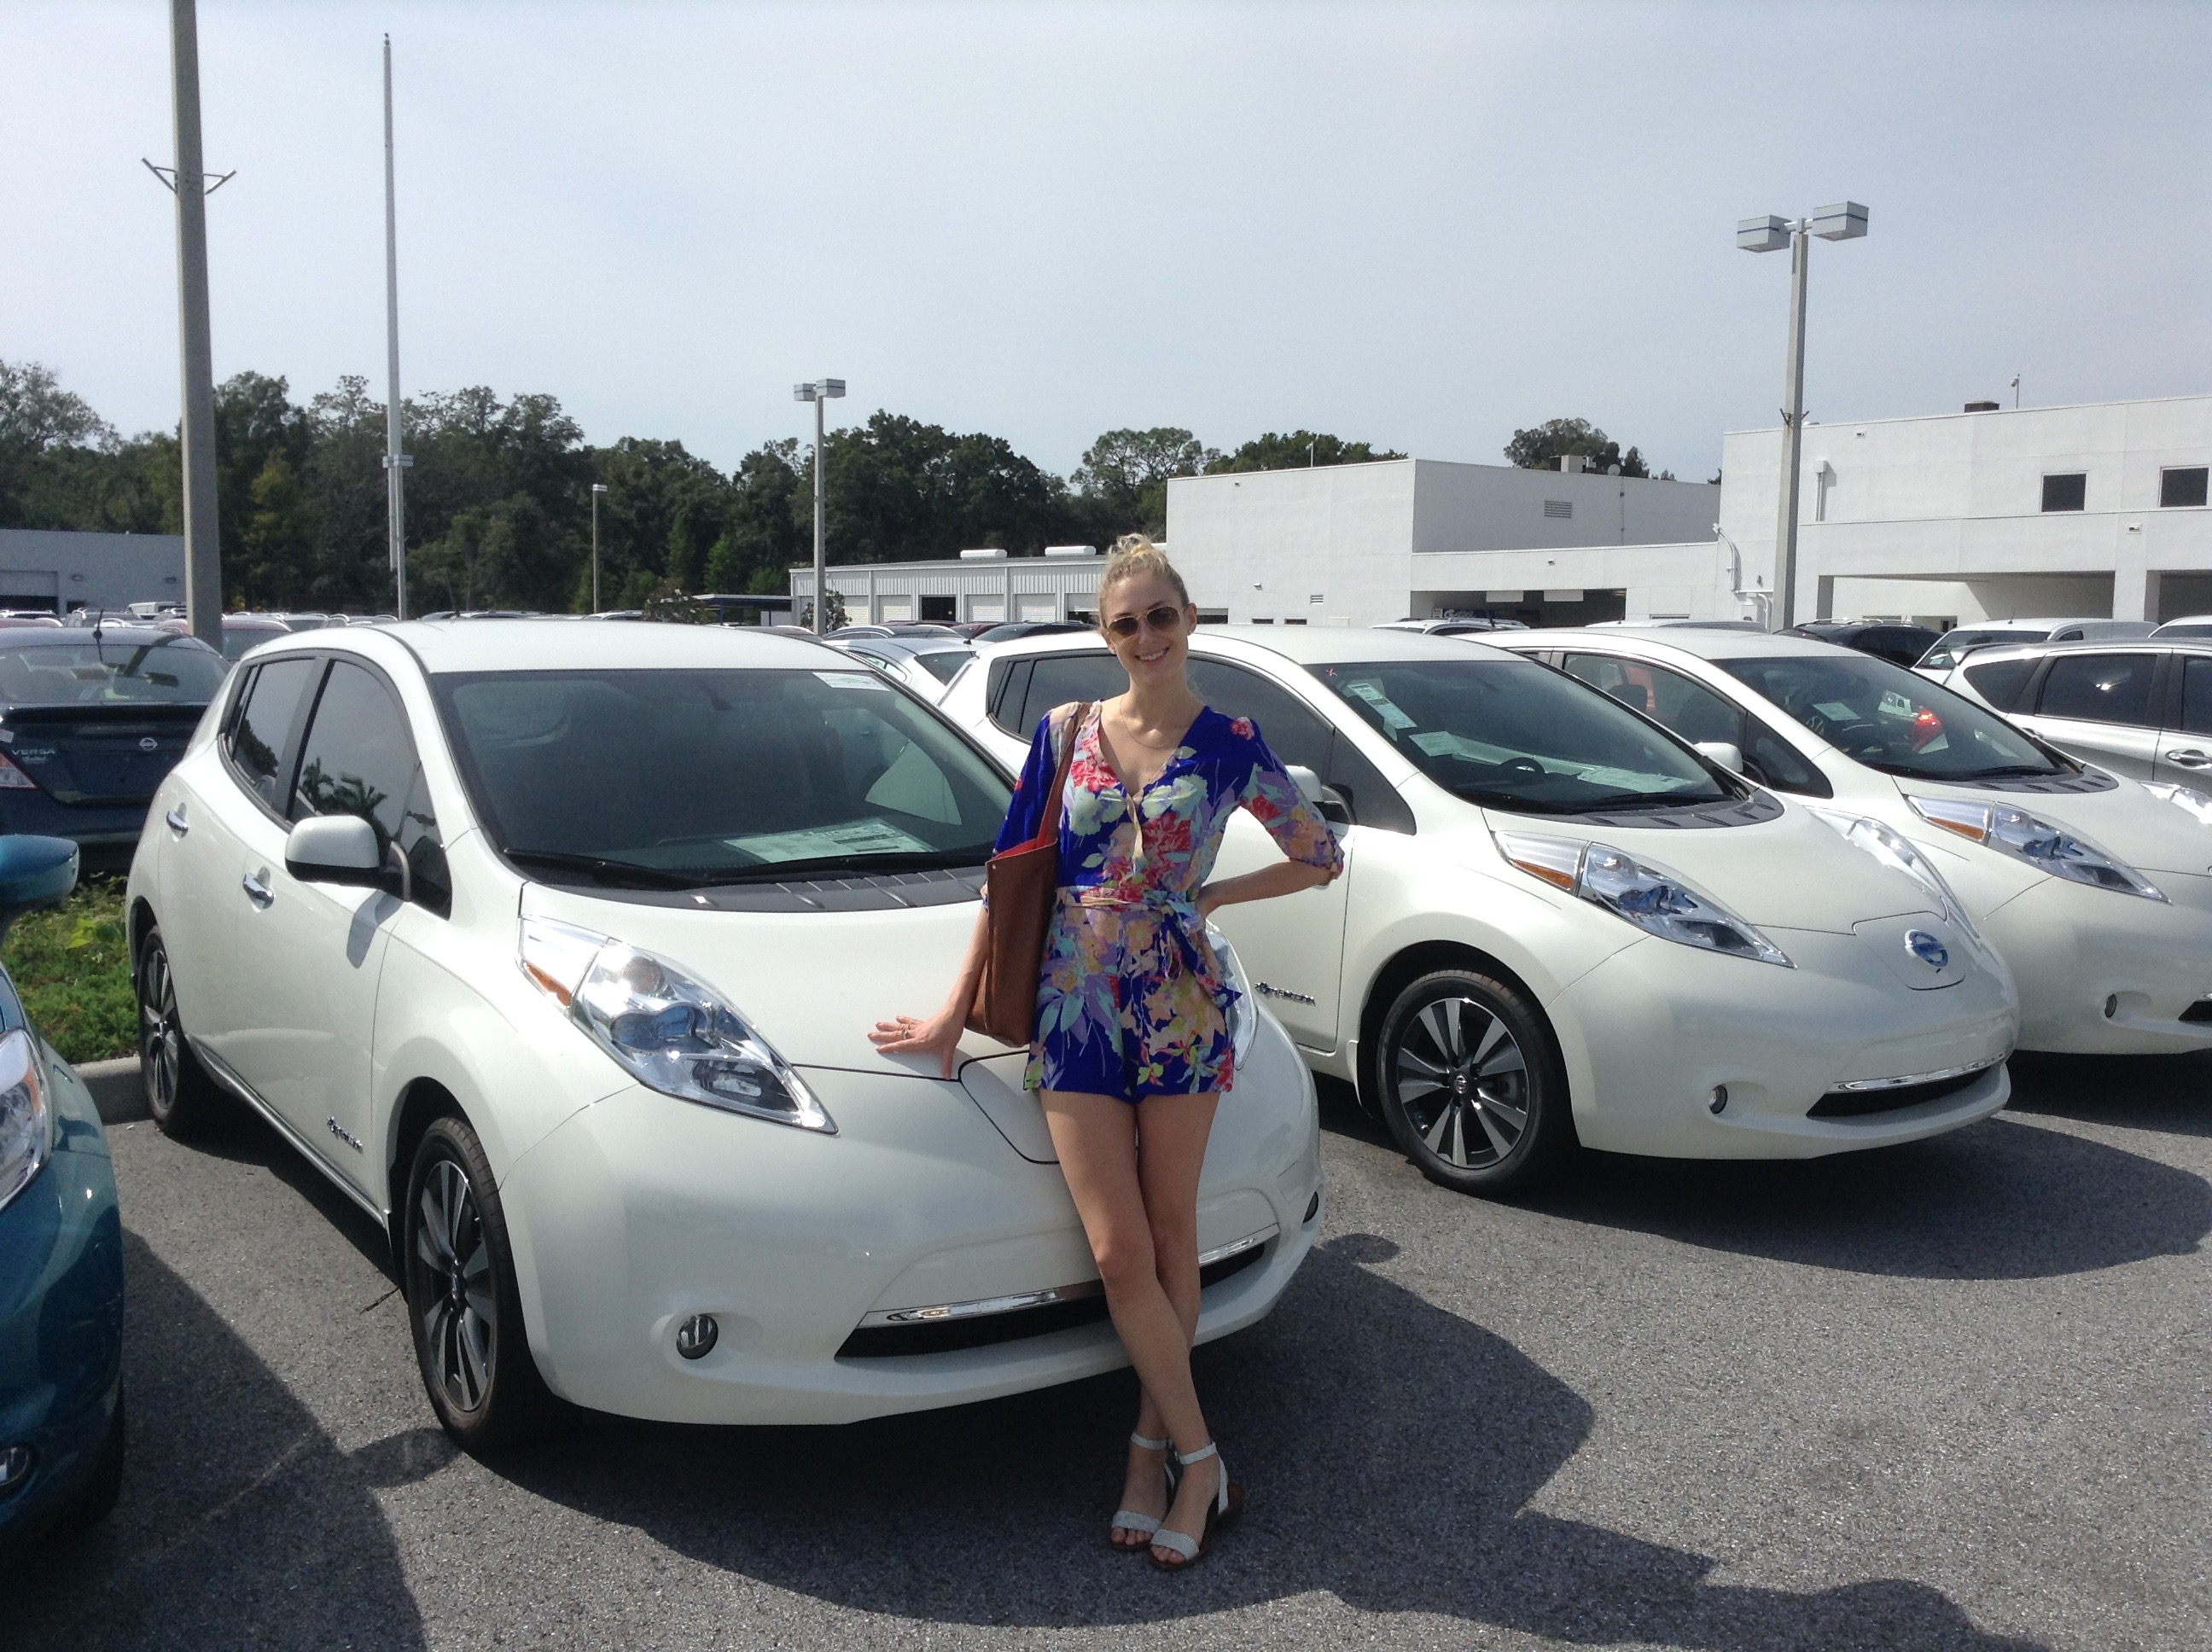 Used Leaf Electric Cars For Sale In The Us